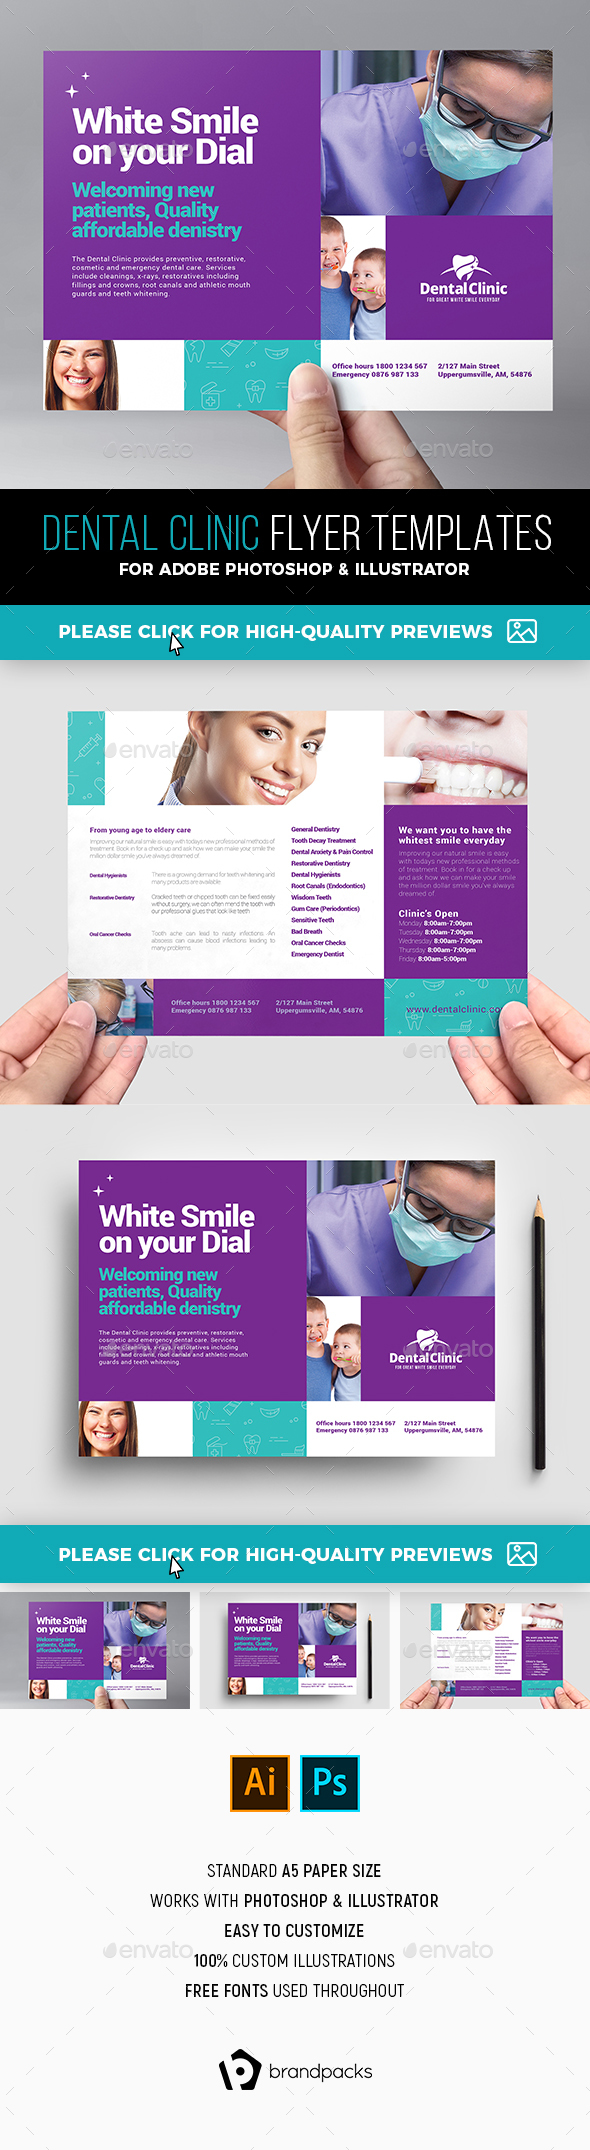 Dental Clinic Flyer Template - Corporate Flyers